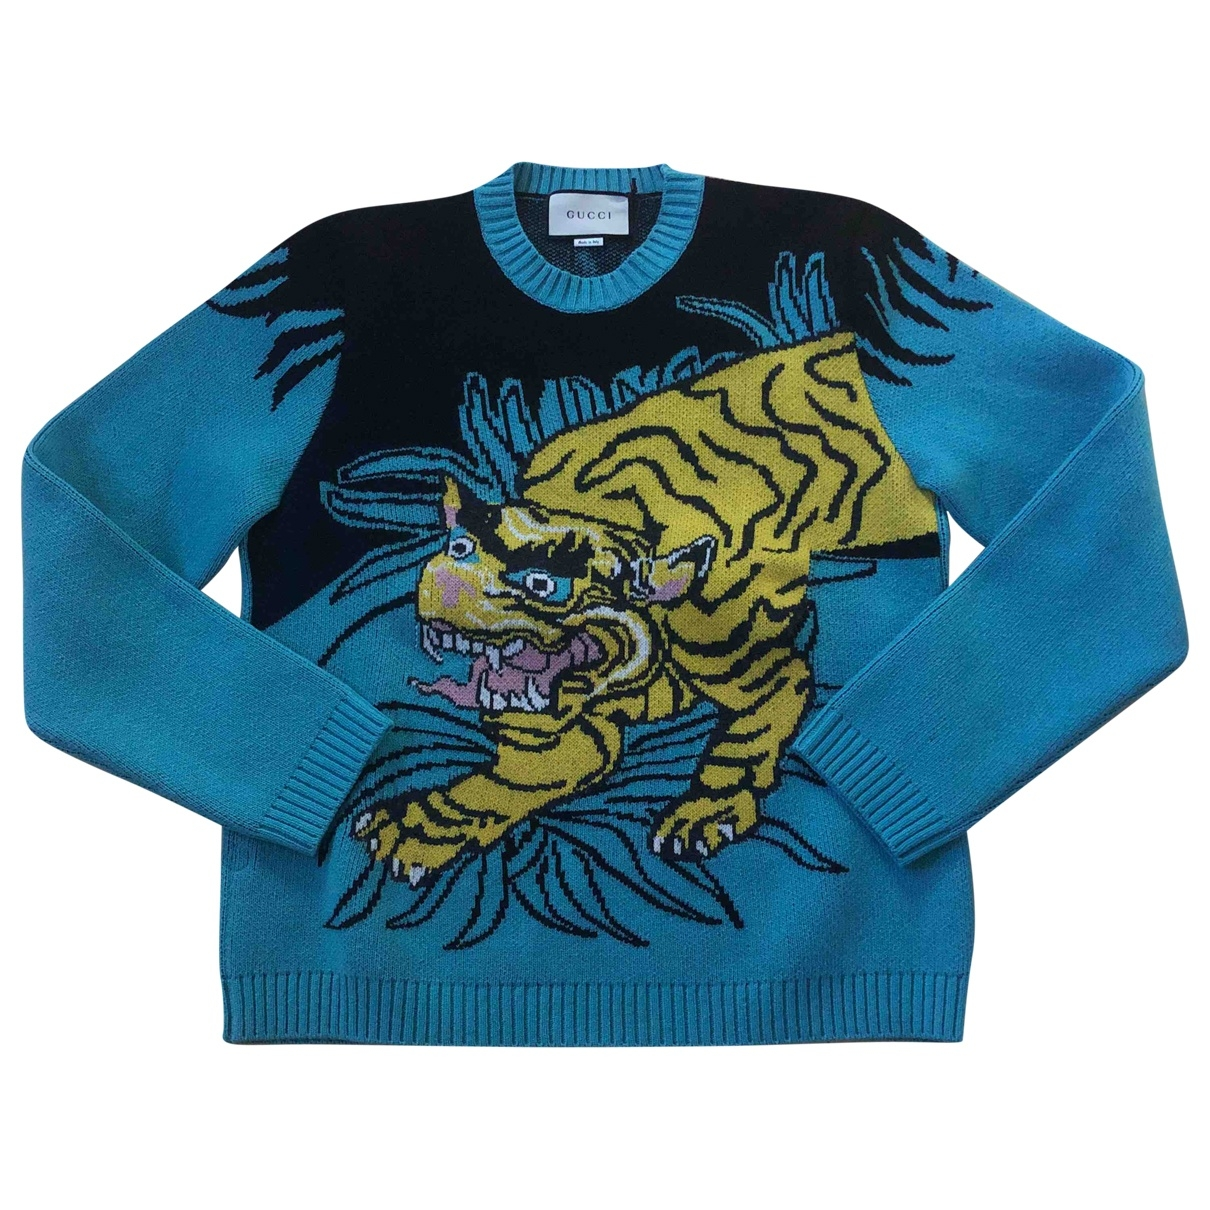 Gucci \N Turquoise Wool Knitwear & Sweatshirts for Men M International